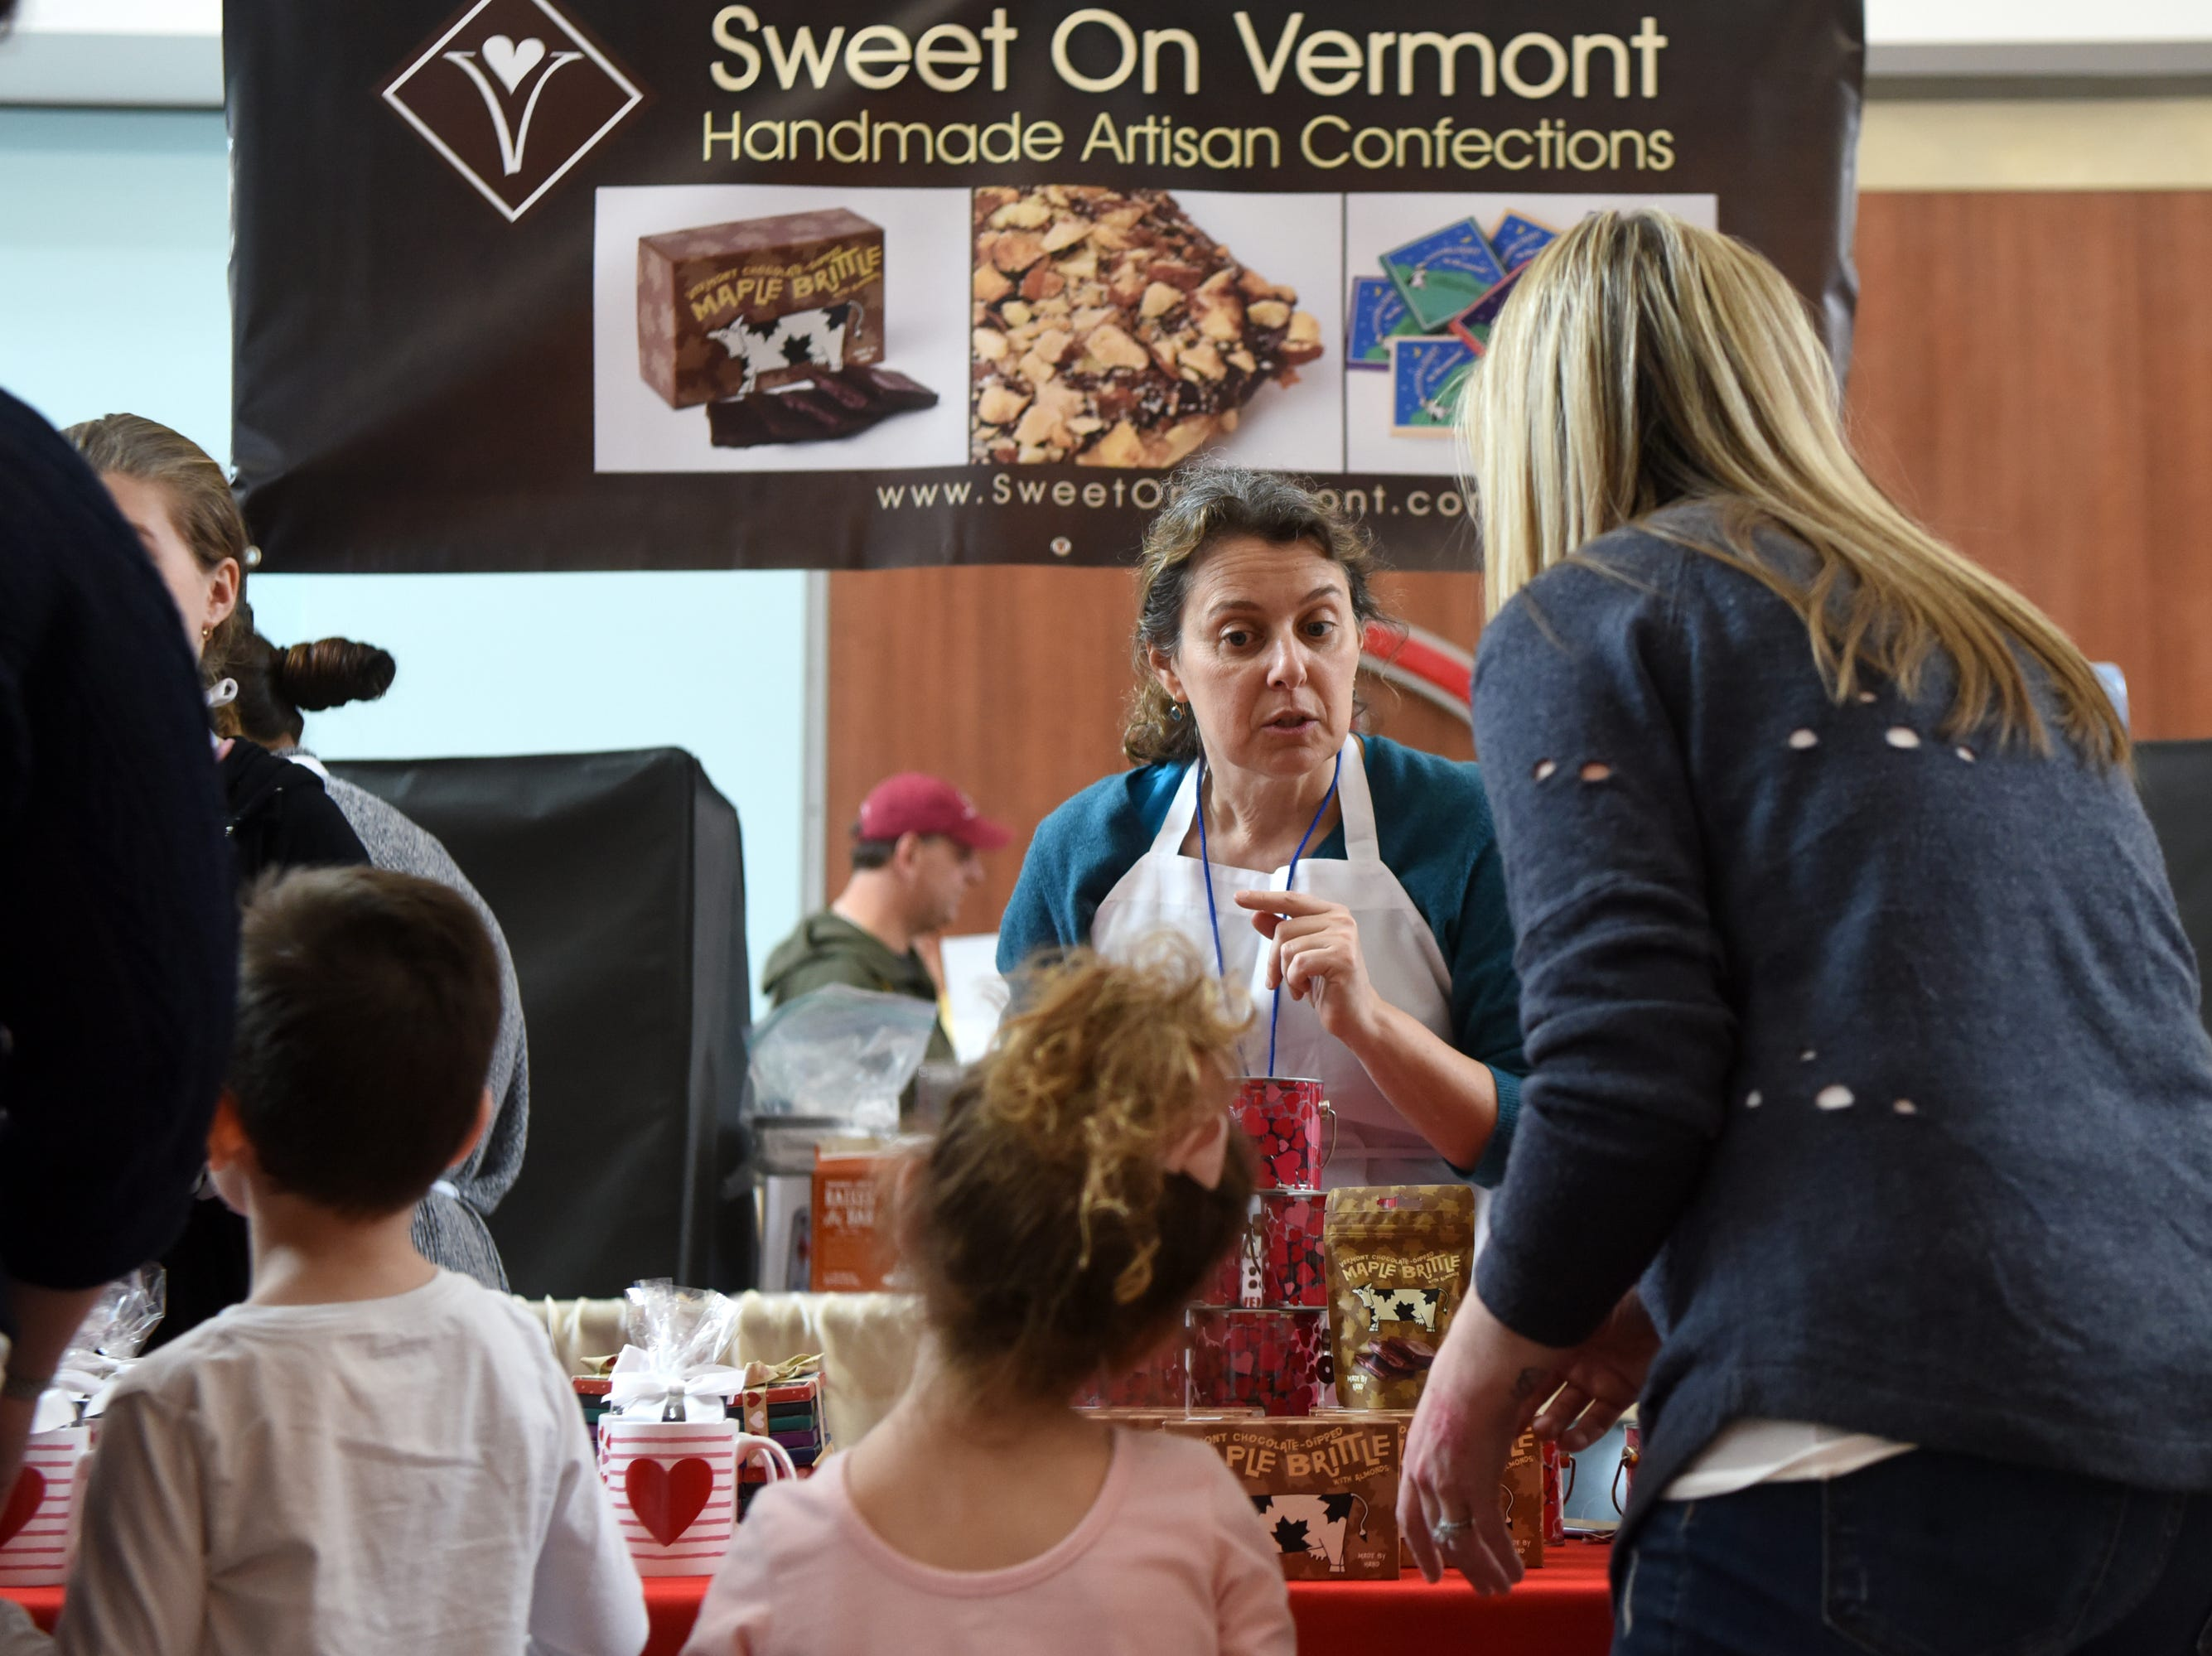 Erika Henik, a native of Teaneck, owns Sweet on Vermont, based in Burlington, Vt. Henik sold the company's Vermont Maple Brittle and Mooonlight in Vermont Bars at the Chocolate Expo, held Sunday, January 27, 2019, at Westfield Garden State Plaza in Paramus.